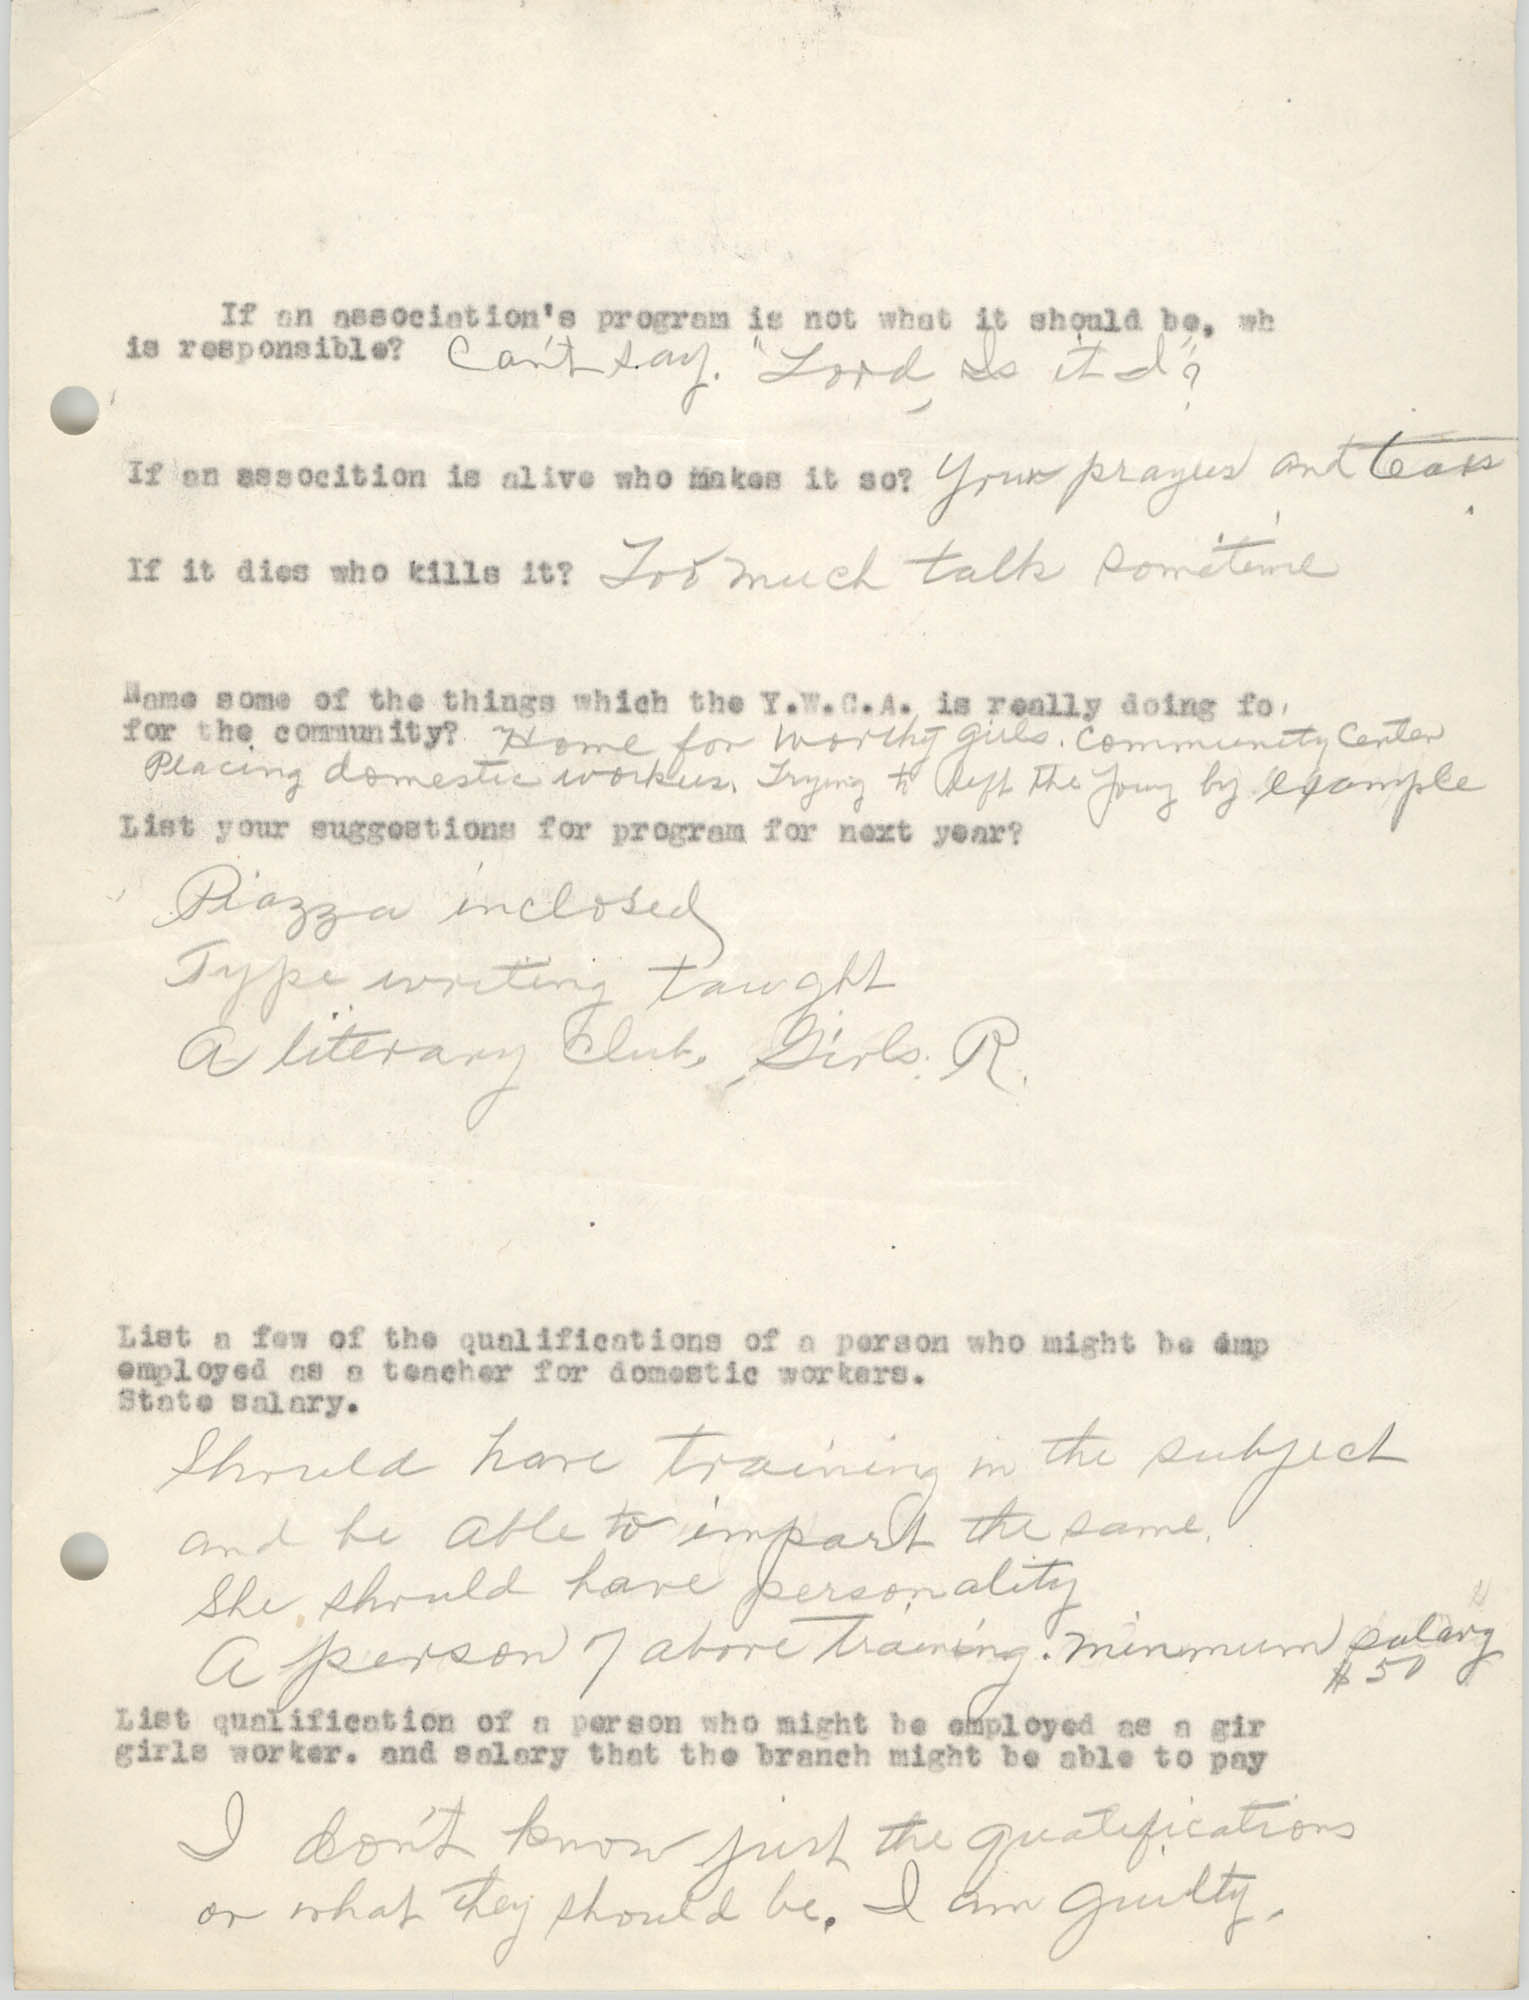 Coming Street Y.W.C.A., Completed Questionnaire Number 1, Page 2